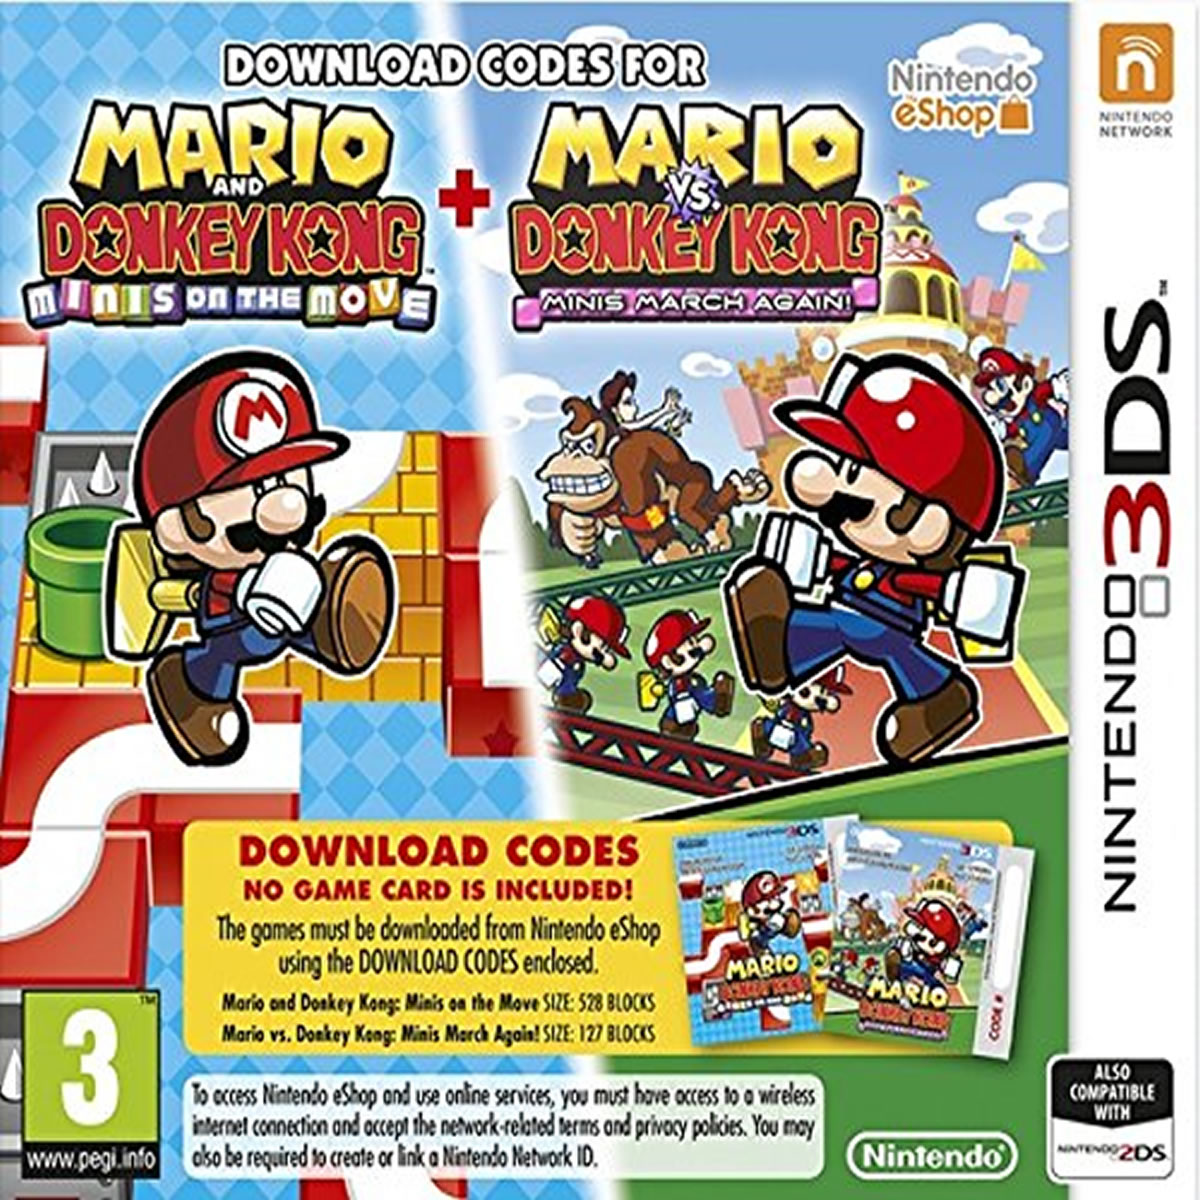 MARIO AND DONKEY KONG: MINIS ON THE MOVE + MARIO VS. DONKEY KONG: MINIS MARCH AGAIN! - (CODE IN A BOX) (3DS, 2DS)